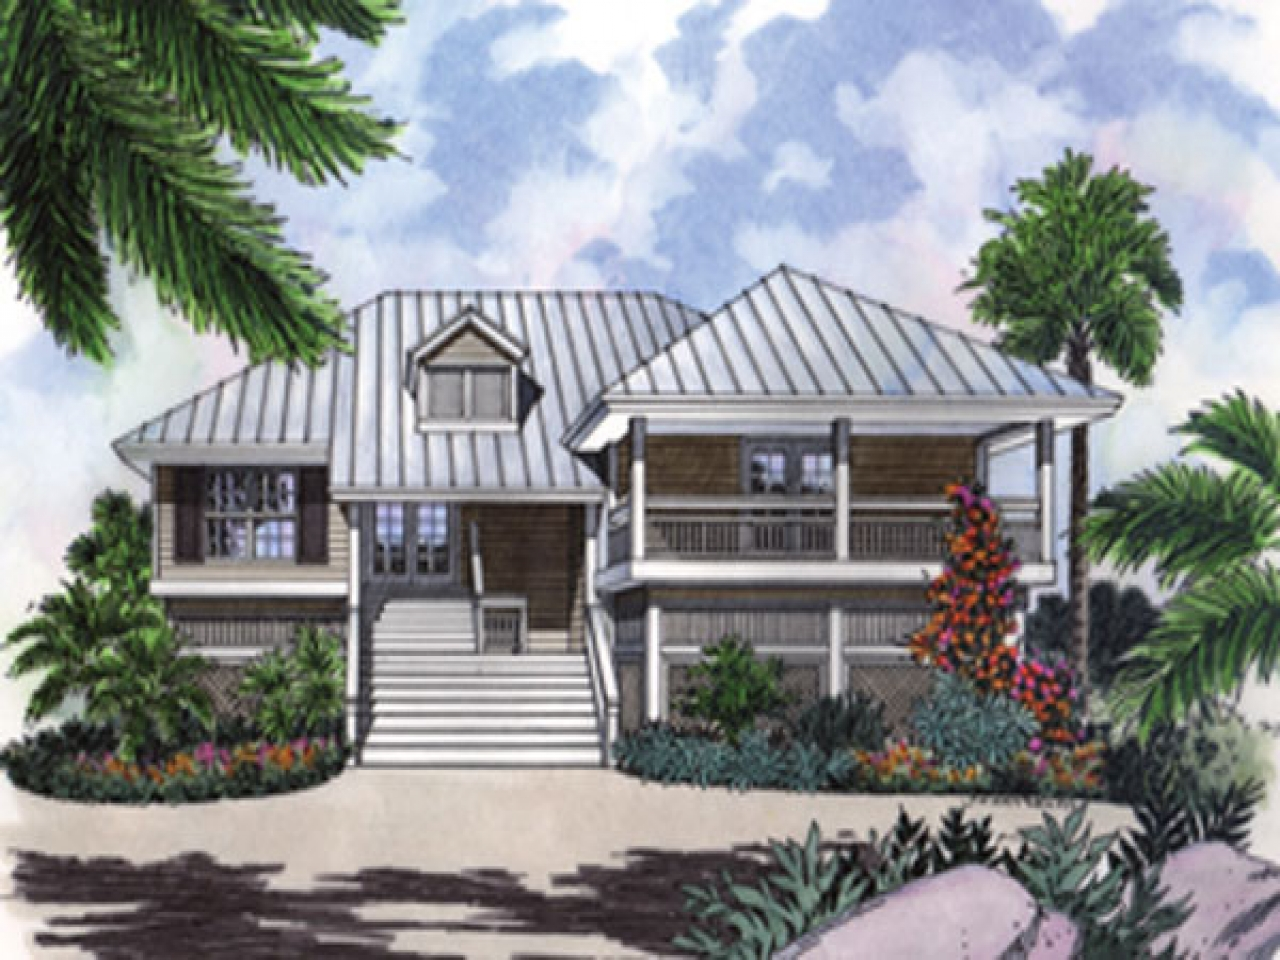 Beach key west style house plans key west beach cam key for Key west style metal roof